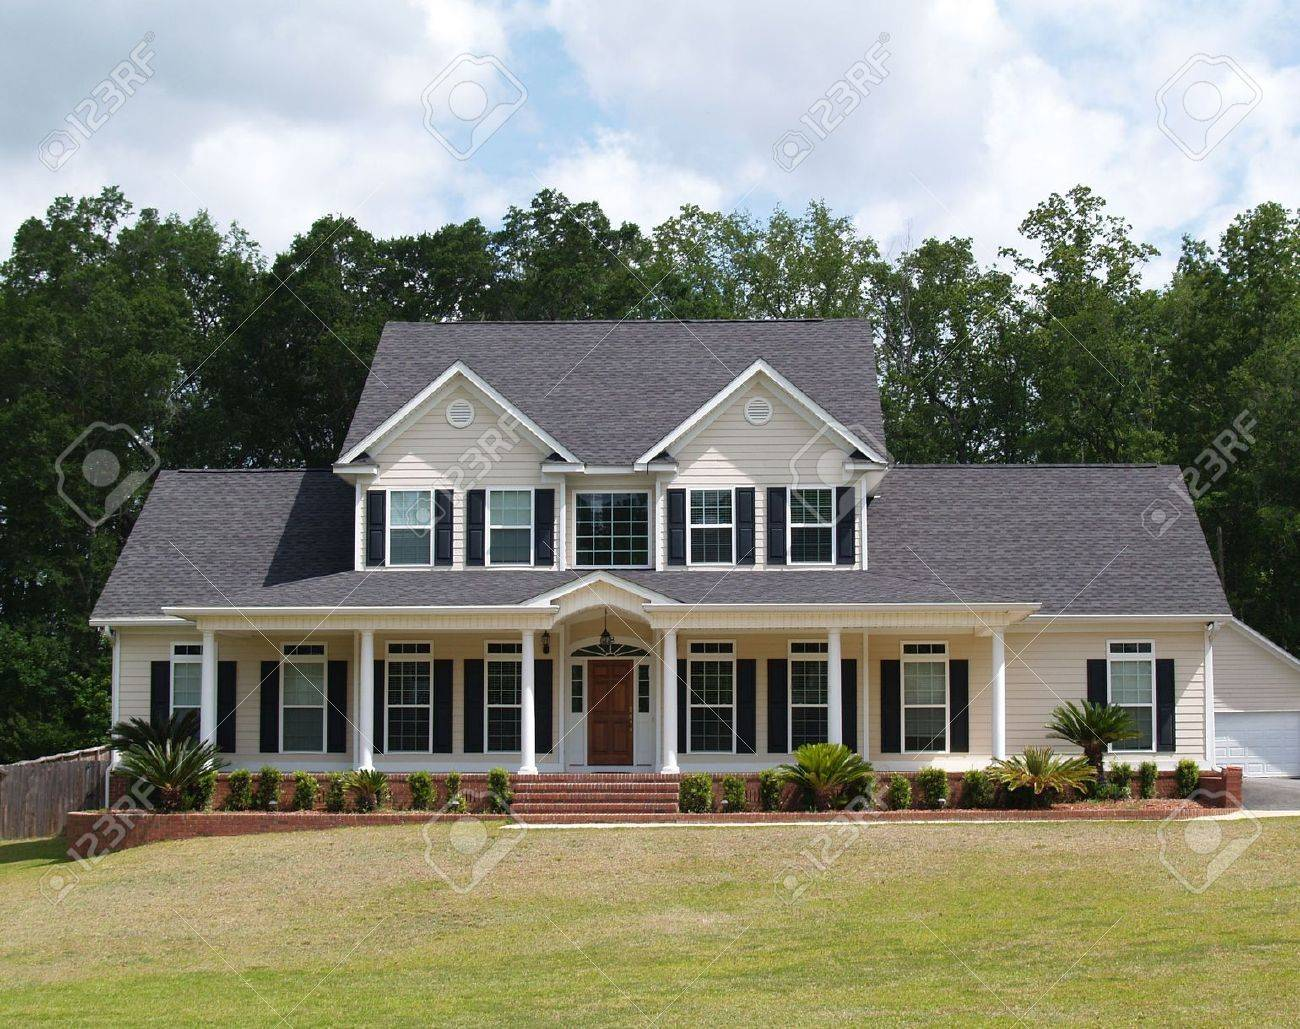 Two story residential home with with board siding on the facade. - 5520066